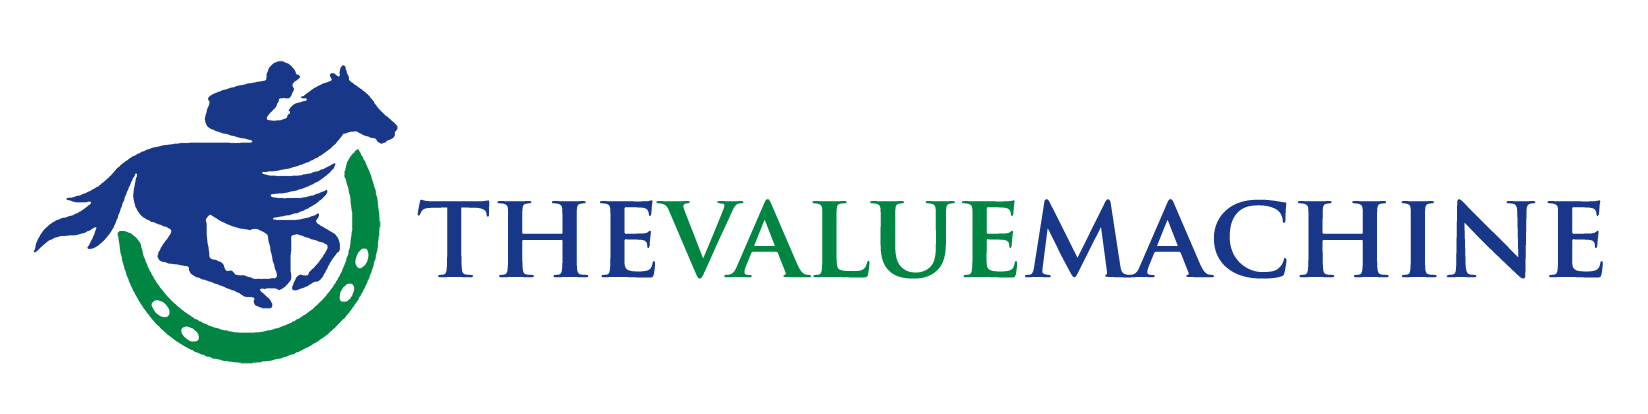 thevaluemachine.co.uk